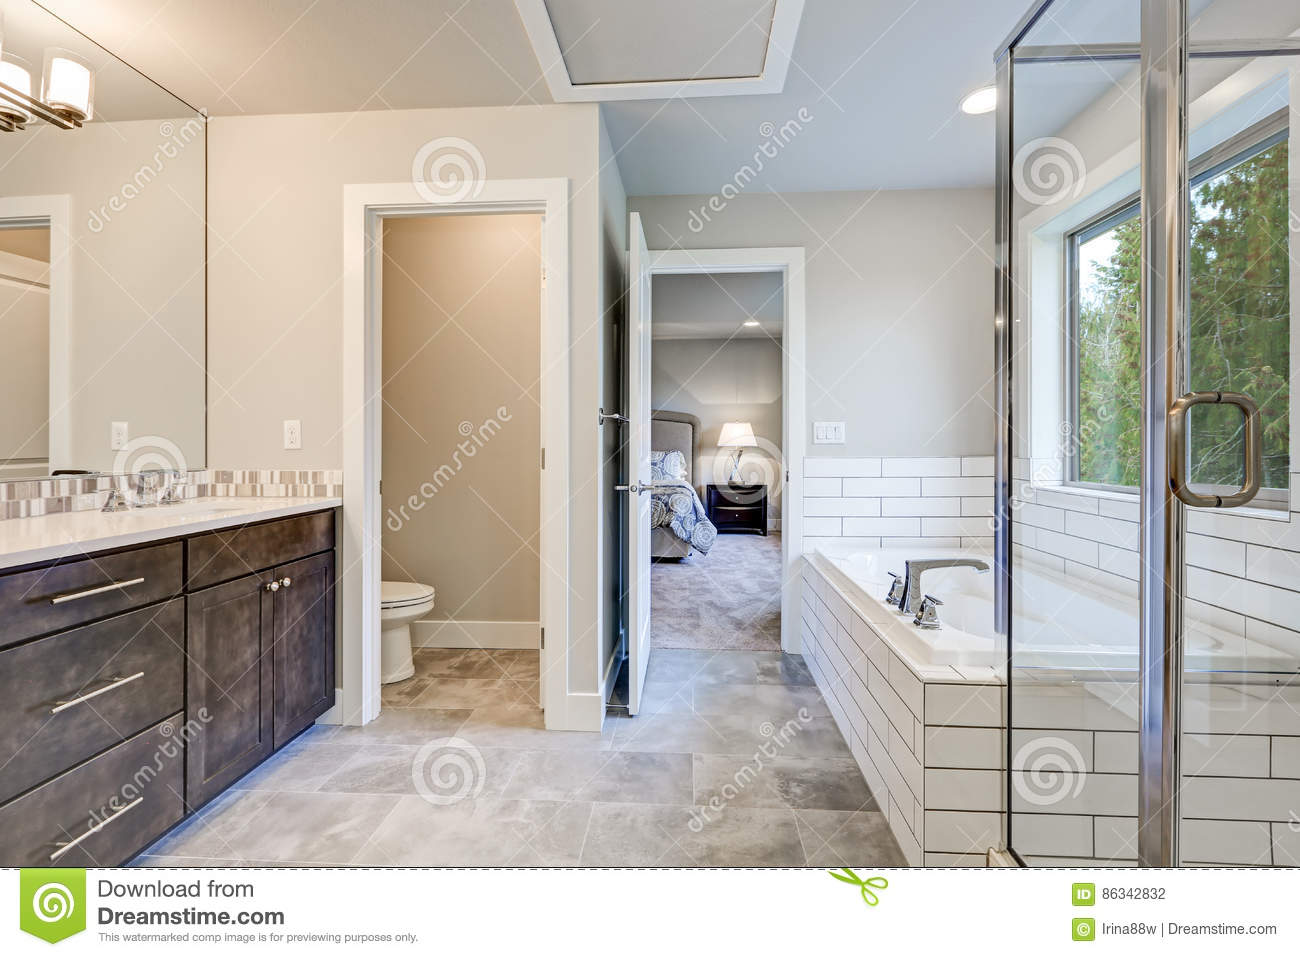 Gorgeous Bathroom Interior Boasts Drop-in Tub Stock Photo - Image of ...